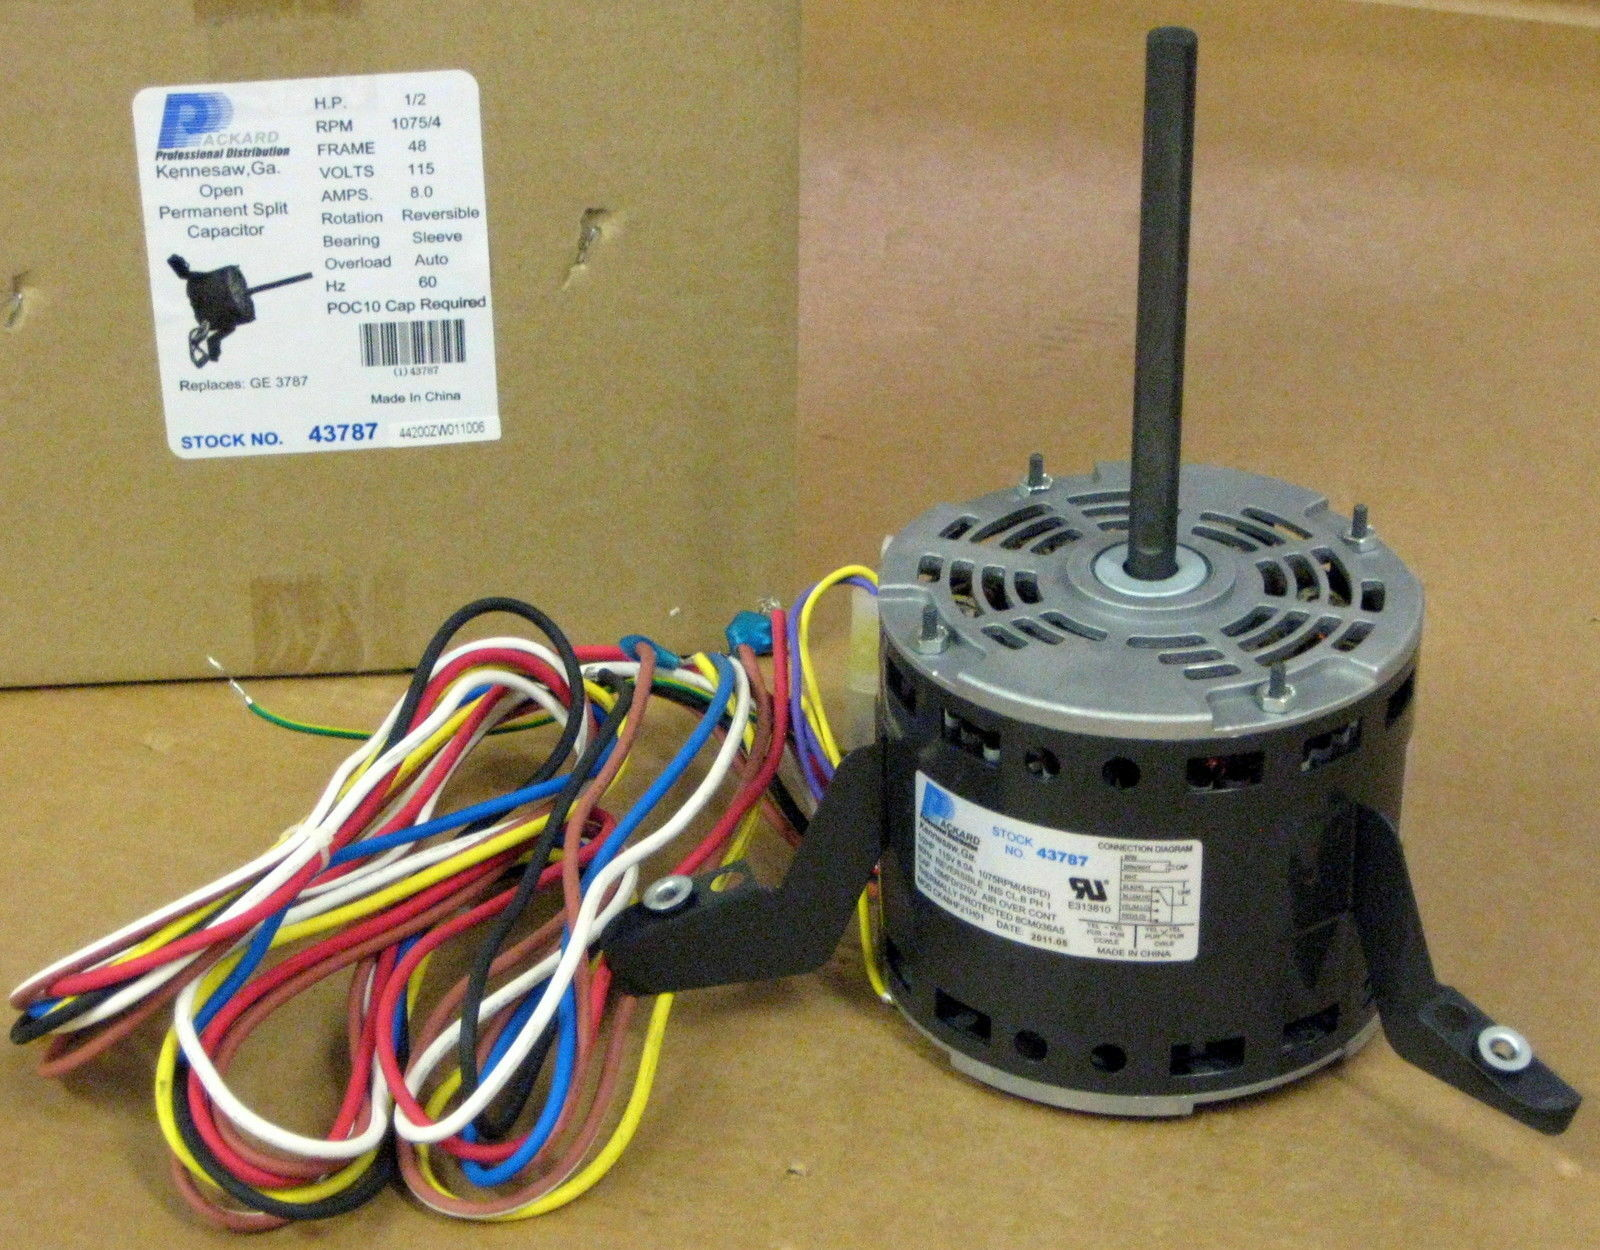 3787 A/C Blower Motor 1/2 HP 115 V 1075 RPM for Goodman 1 of 8 3787 A/C Blower  Motor ...